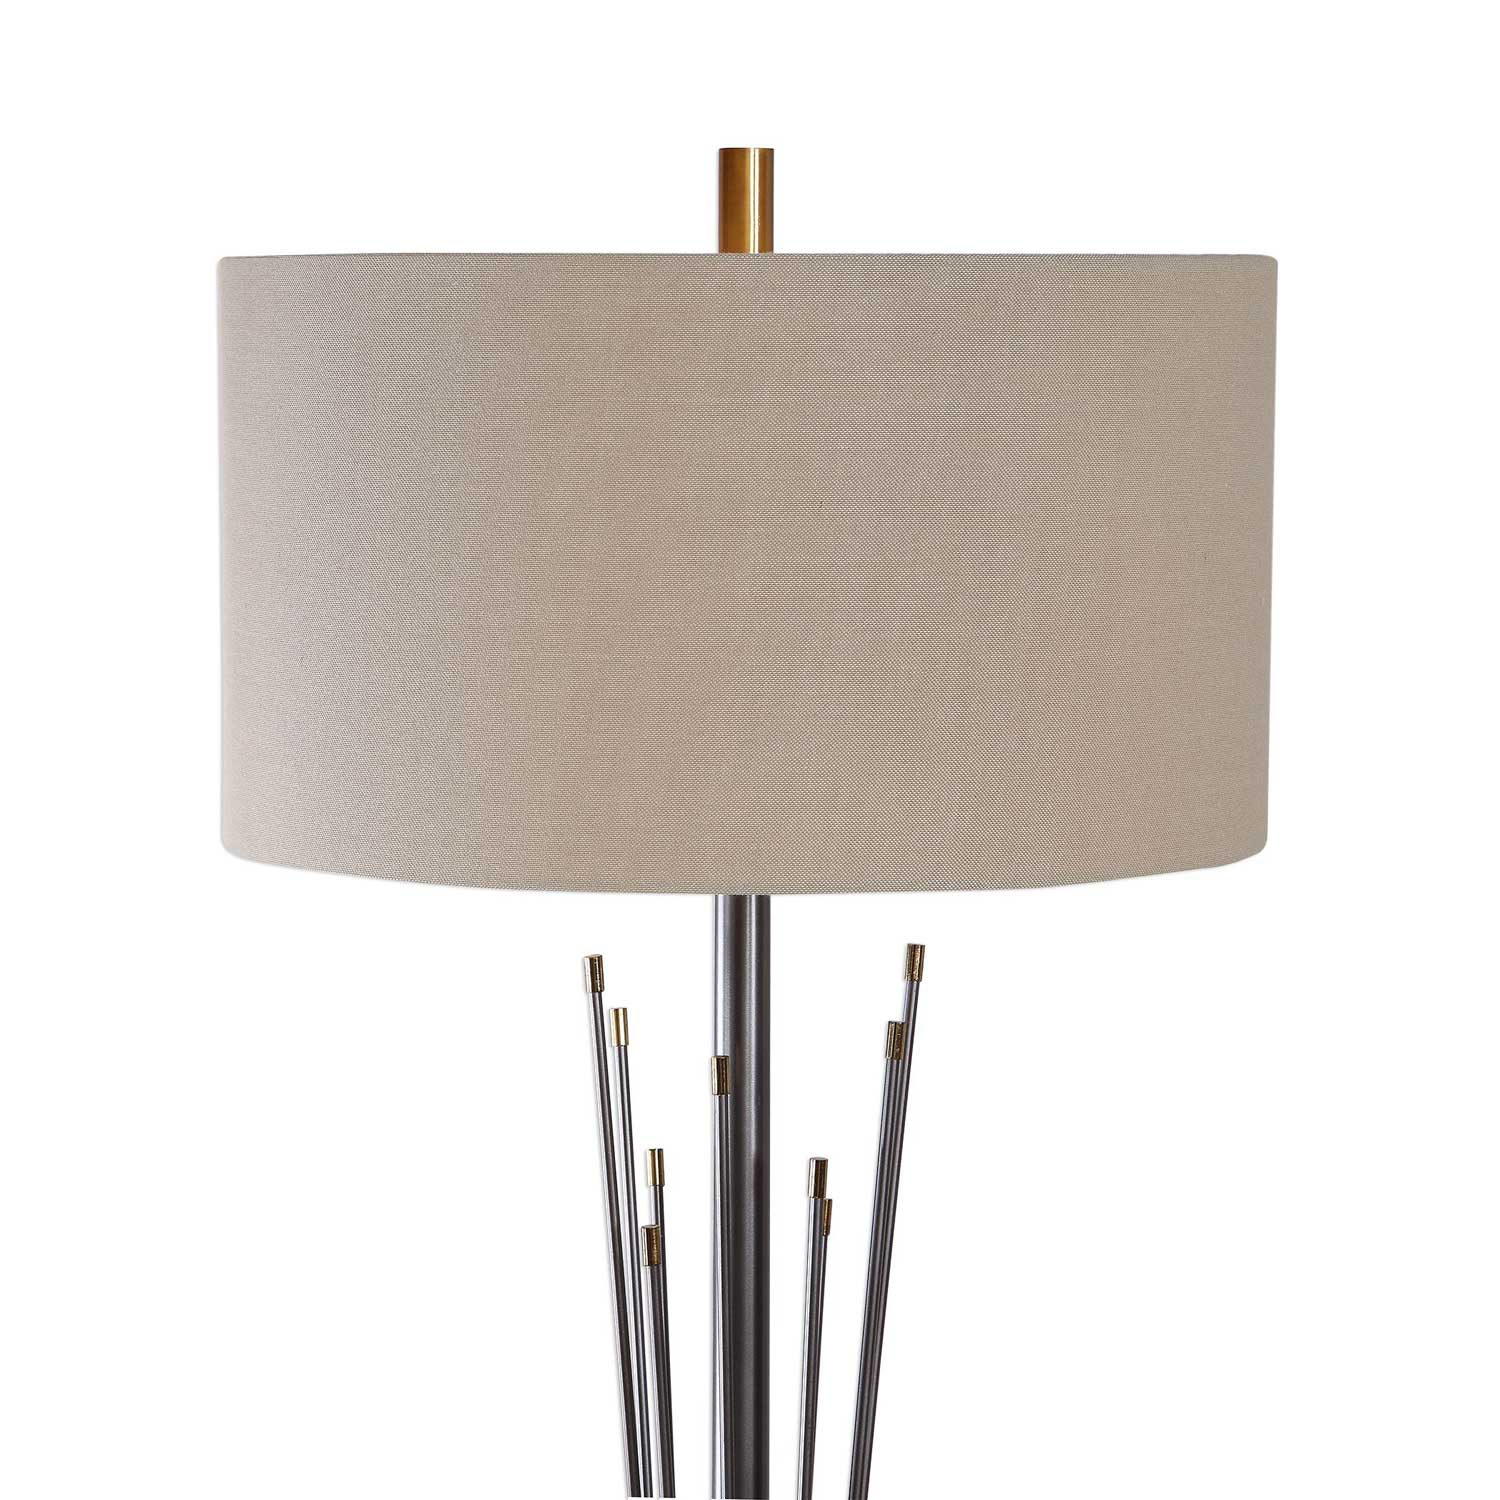 Uttermost Poloma Steel Rods Floor Lamp